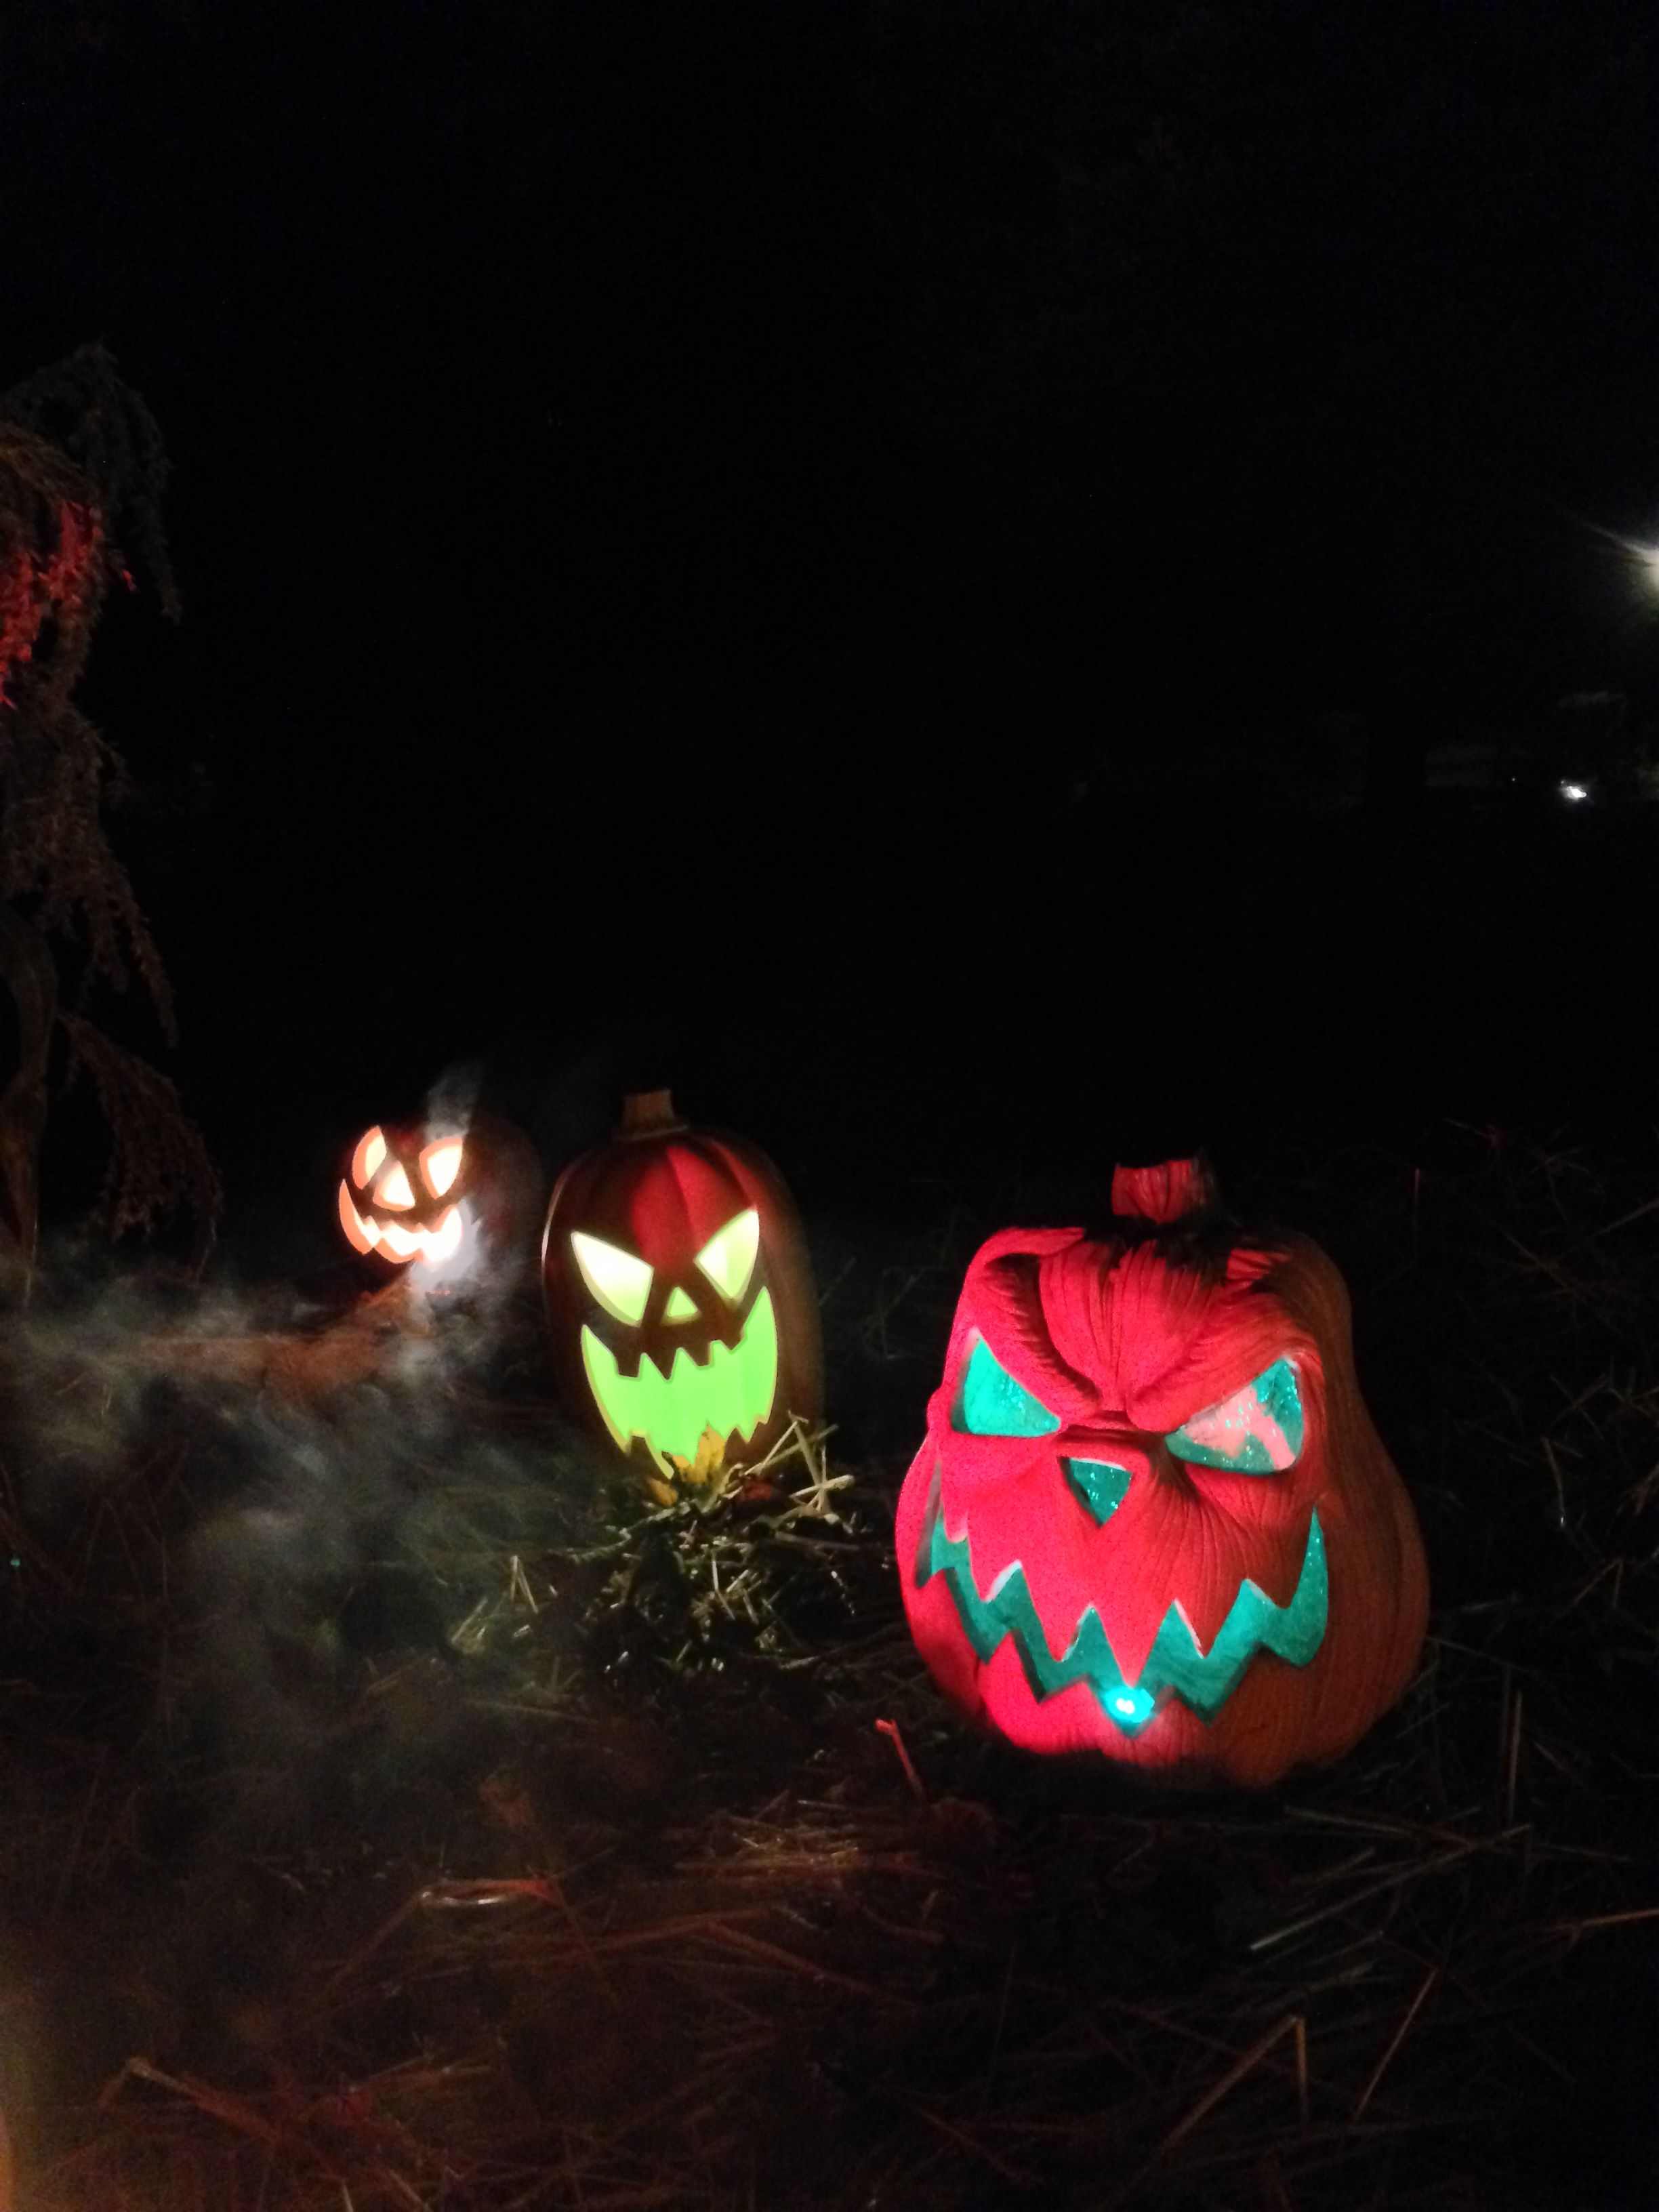 Pin by Thehauntedboro on Halloween DIY Yard Decorations Pinterest - Halloween Yard Decorations